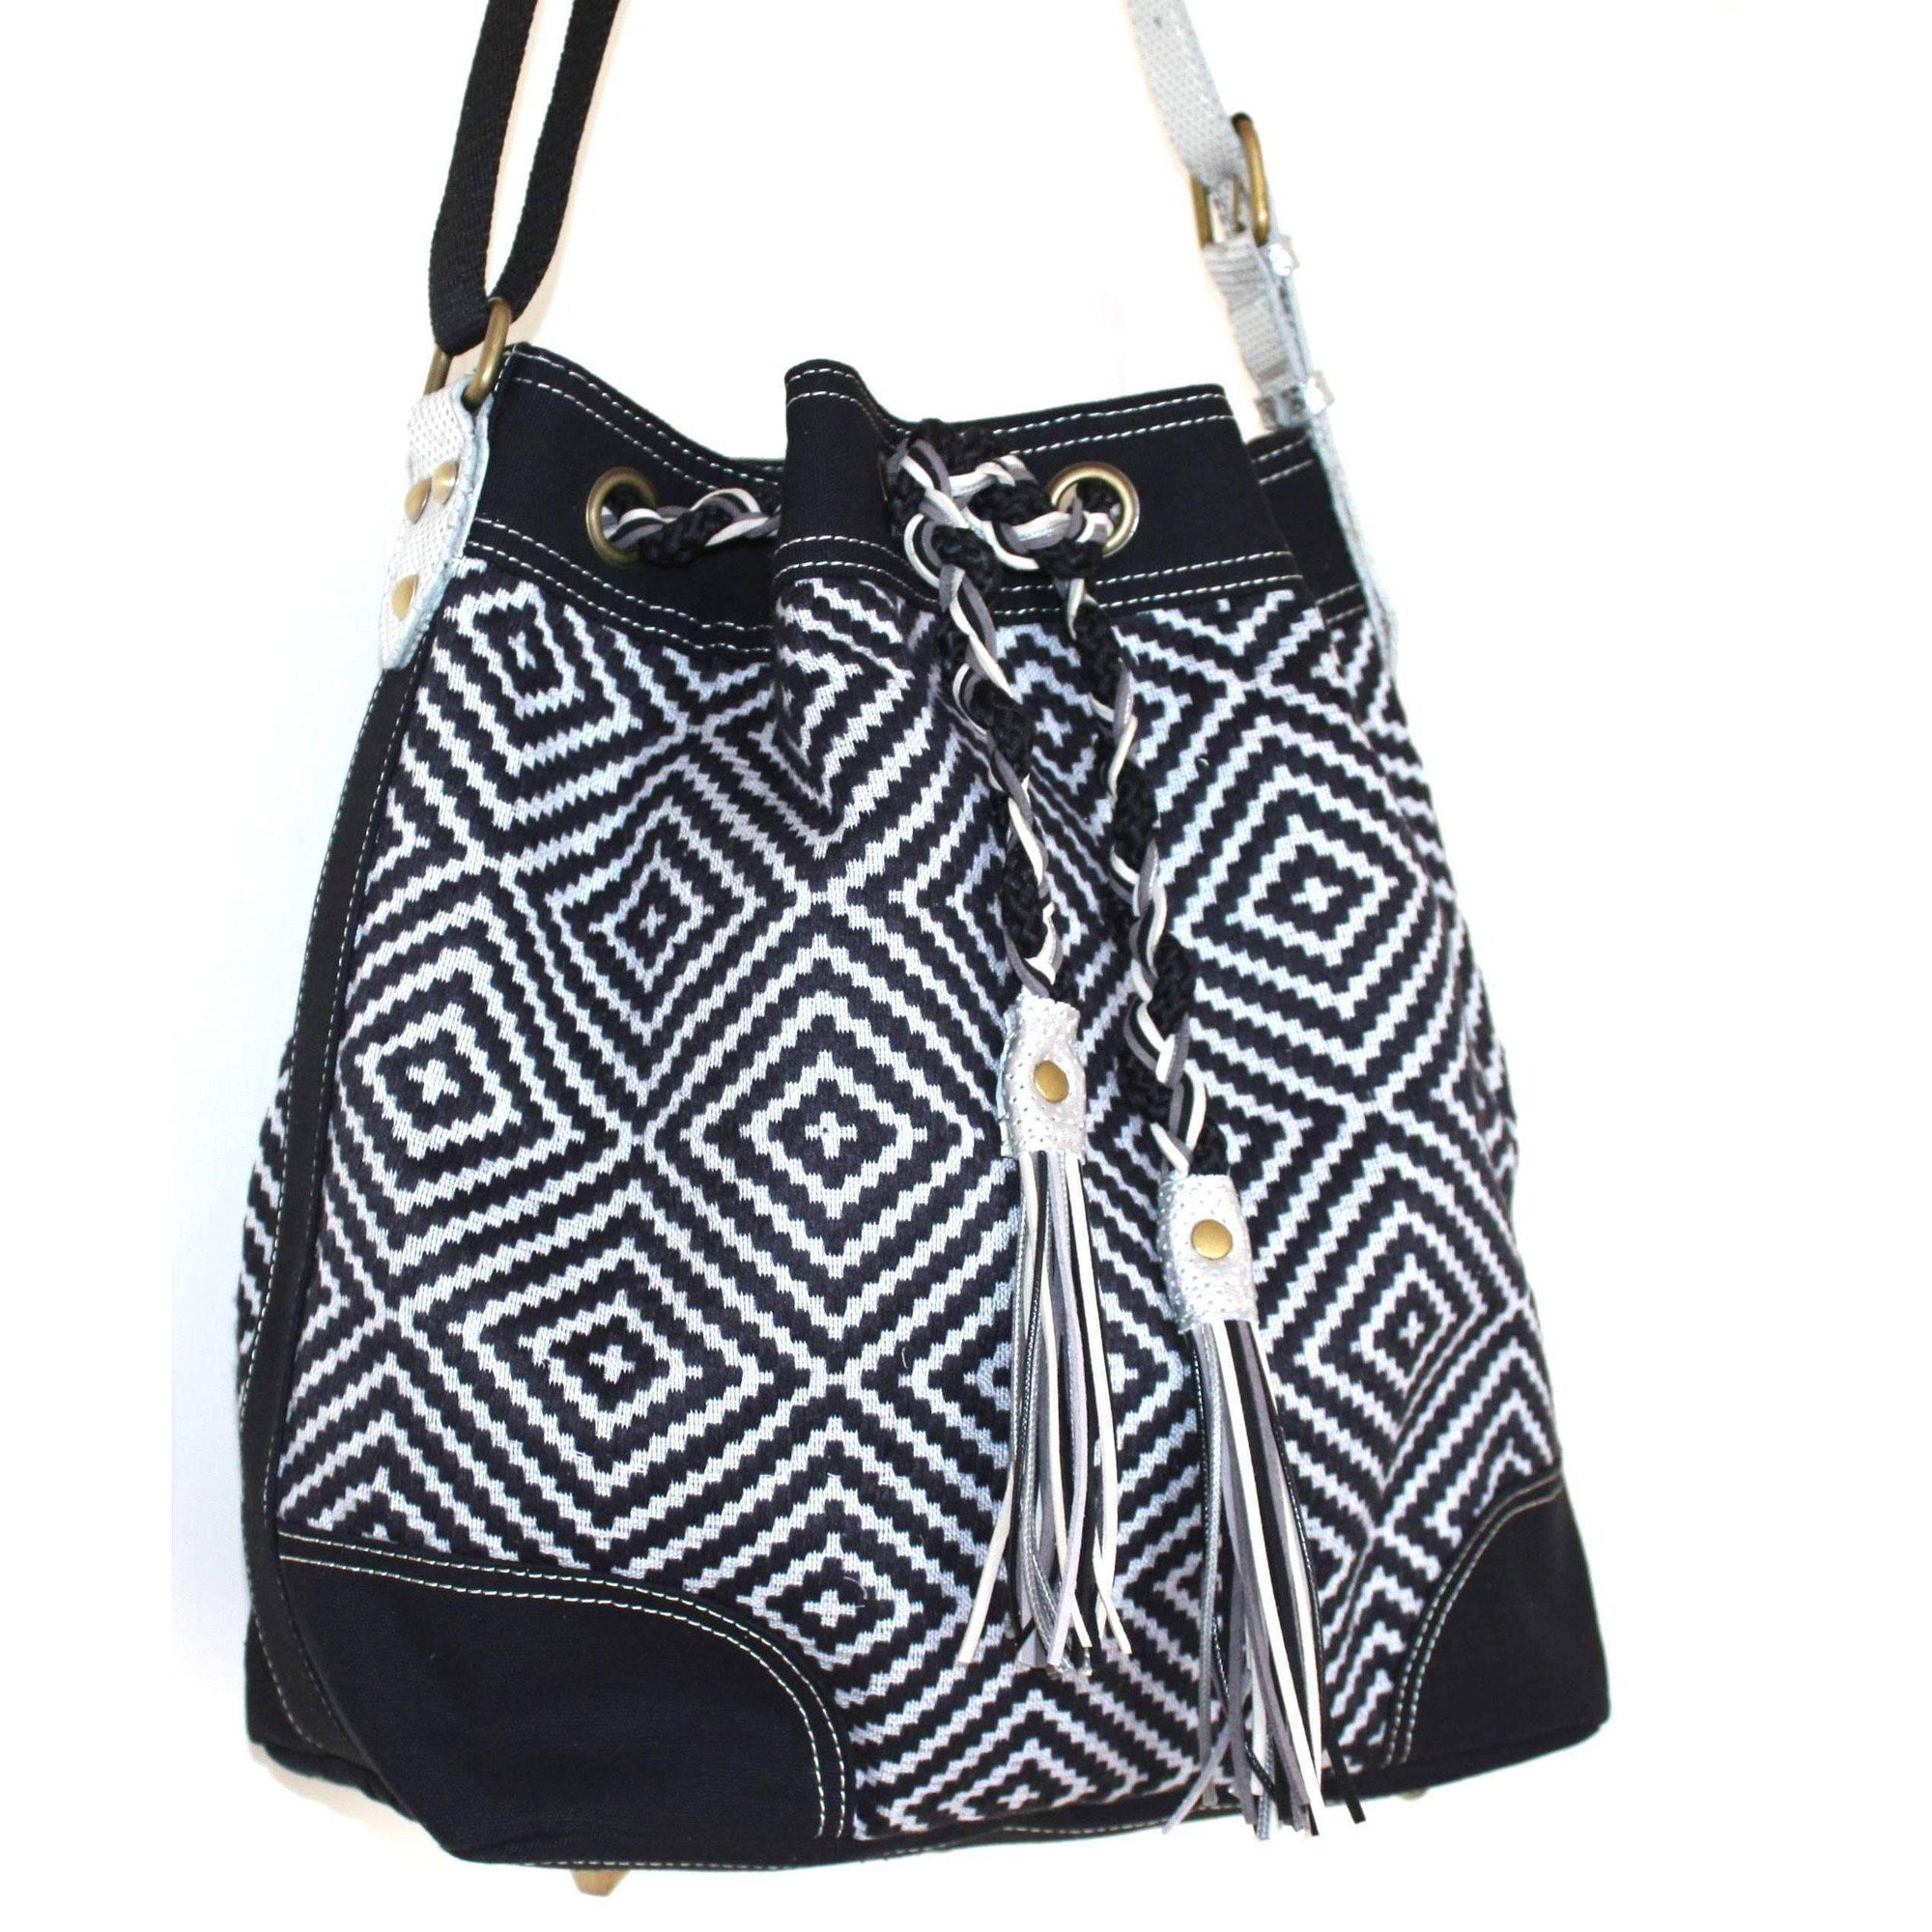 Valerie Cordier Luis Mai Chau Black and Grey Bucket Bag